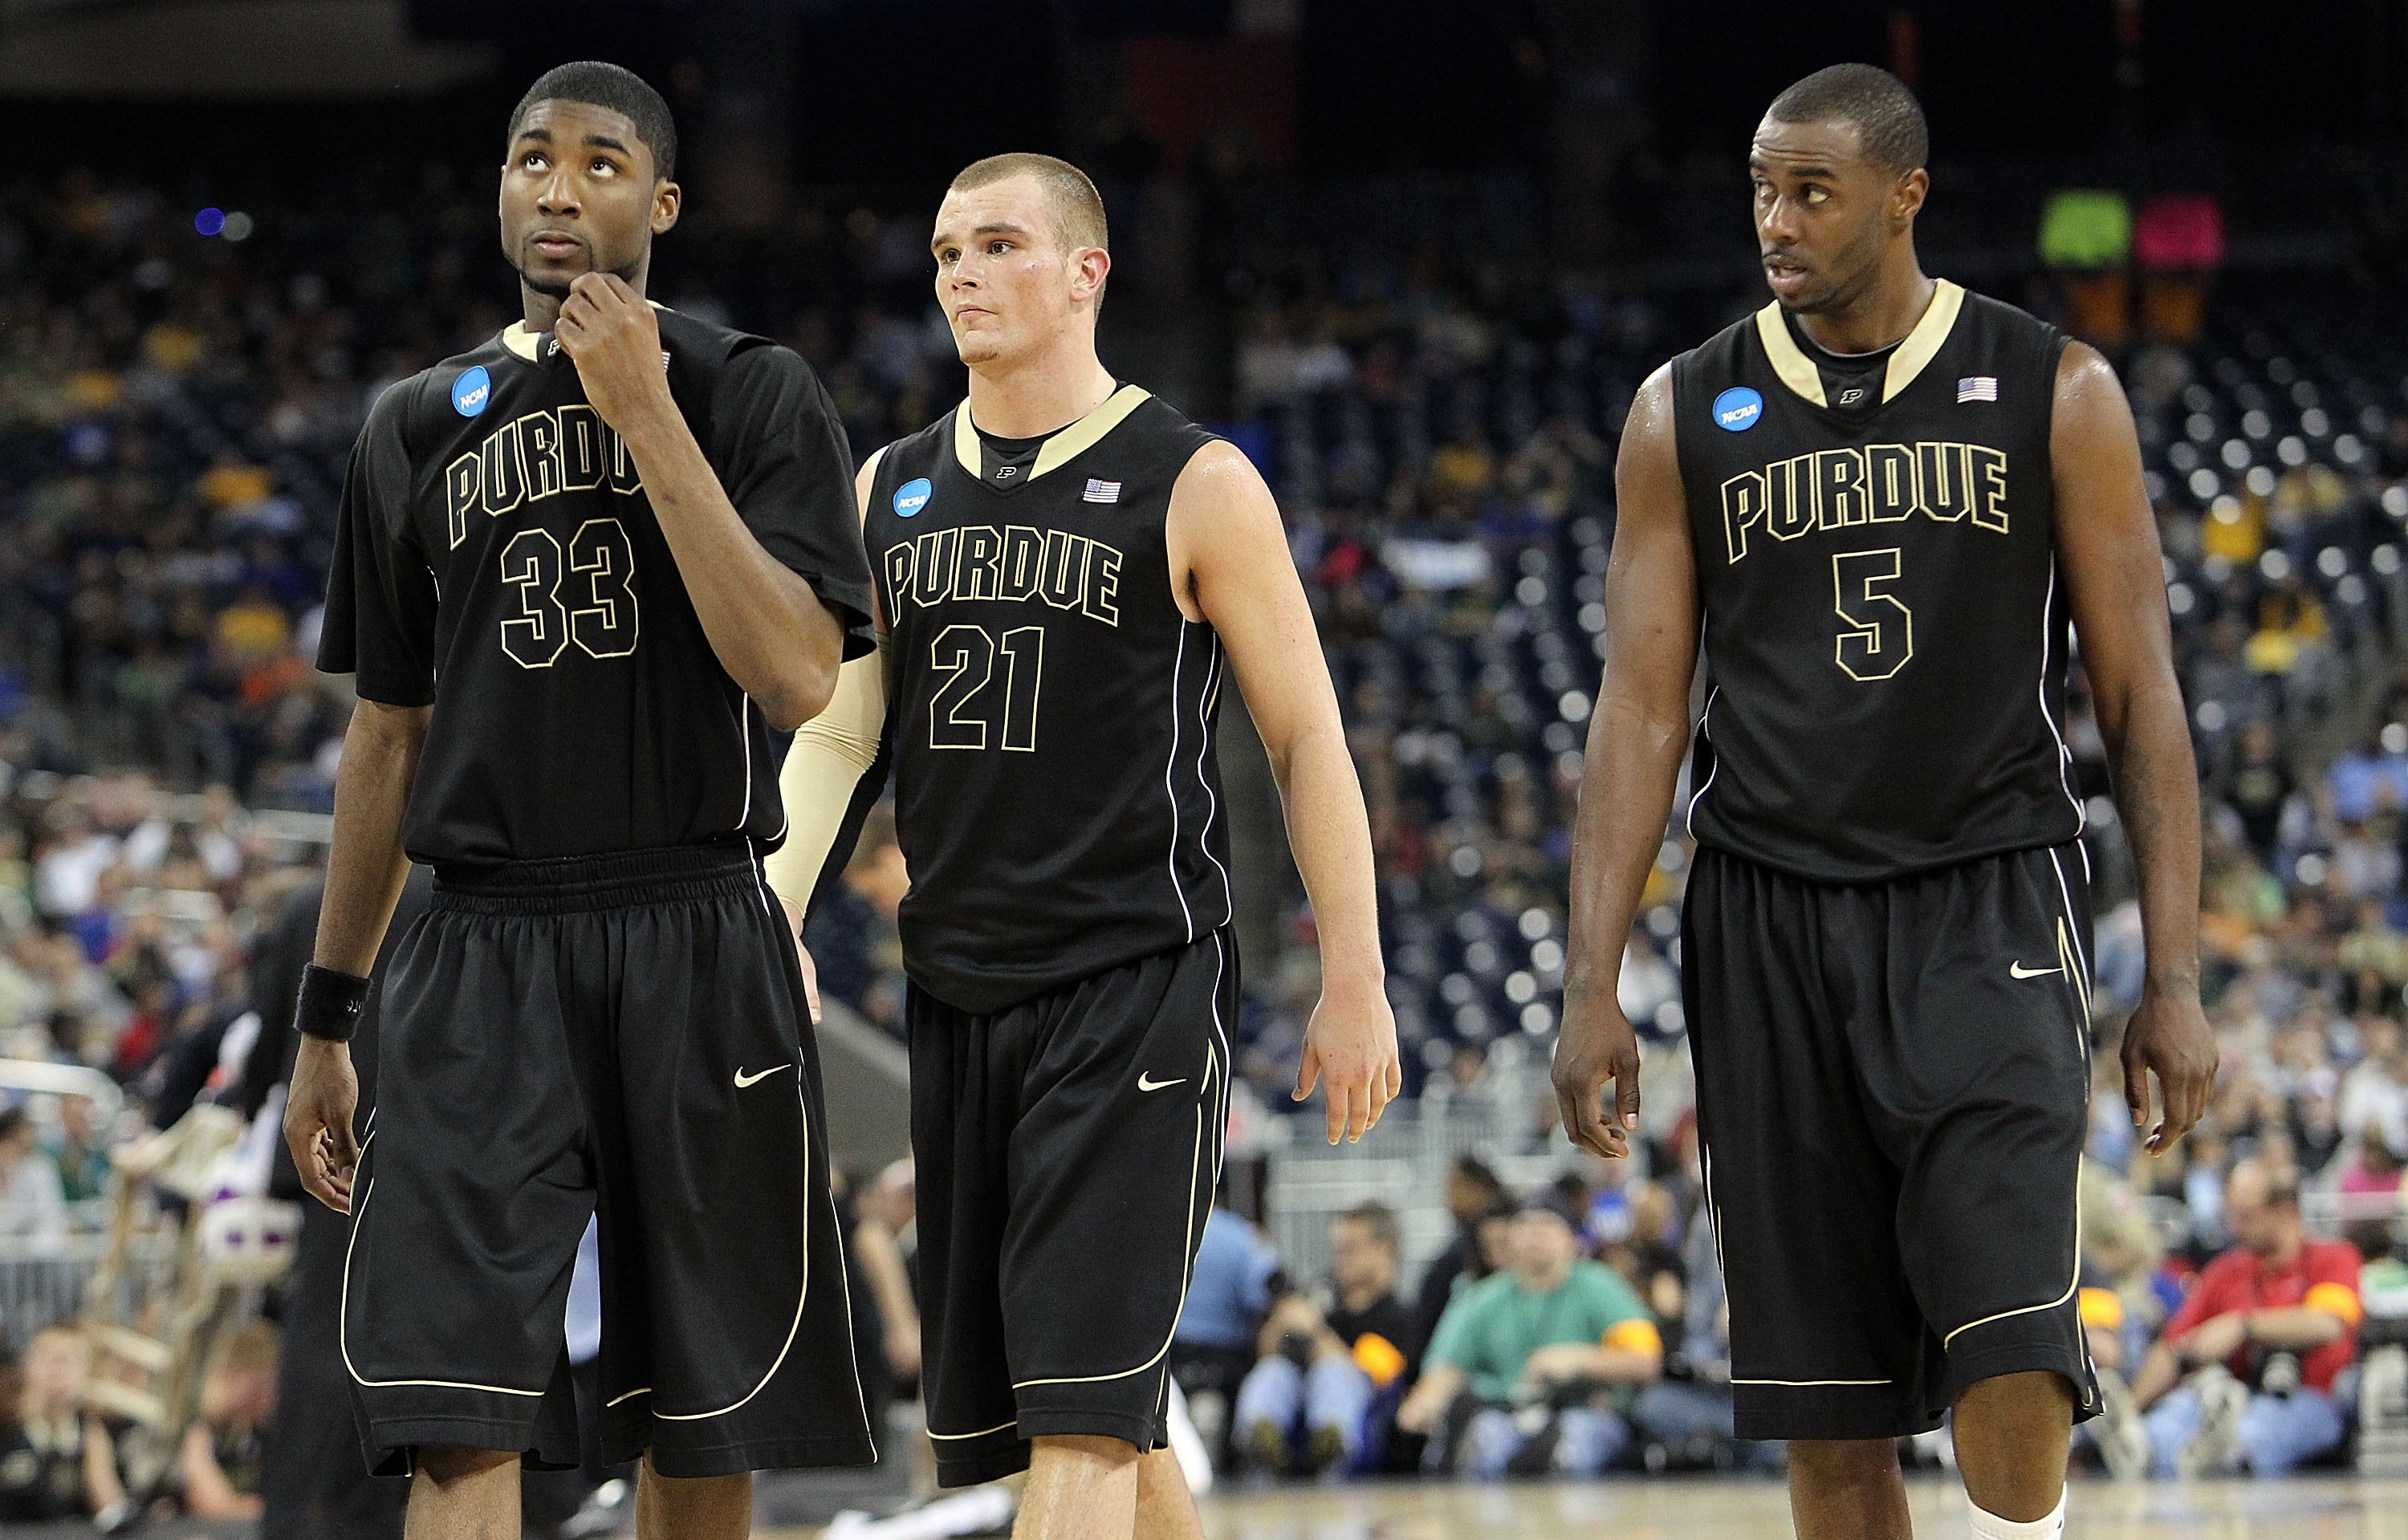 HOUSTON - MARCH 26: (L-R) E'Twaun Moore #33, D.J. Byrd #21 and Keaton Grant #5 of the Purdue Boilermakers during a 70-57 loss against the Duke Blue Devils during the south regional semifinal of the 2010 NCAA men's basketball tournament at Reliant Stadium